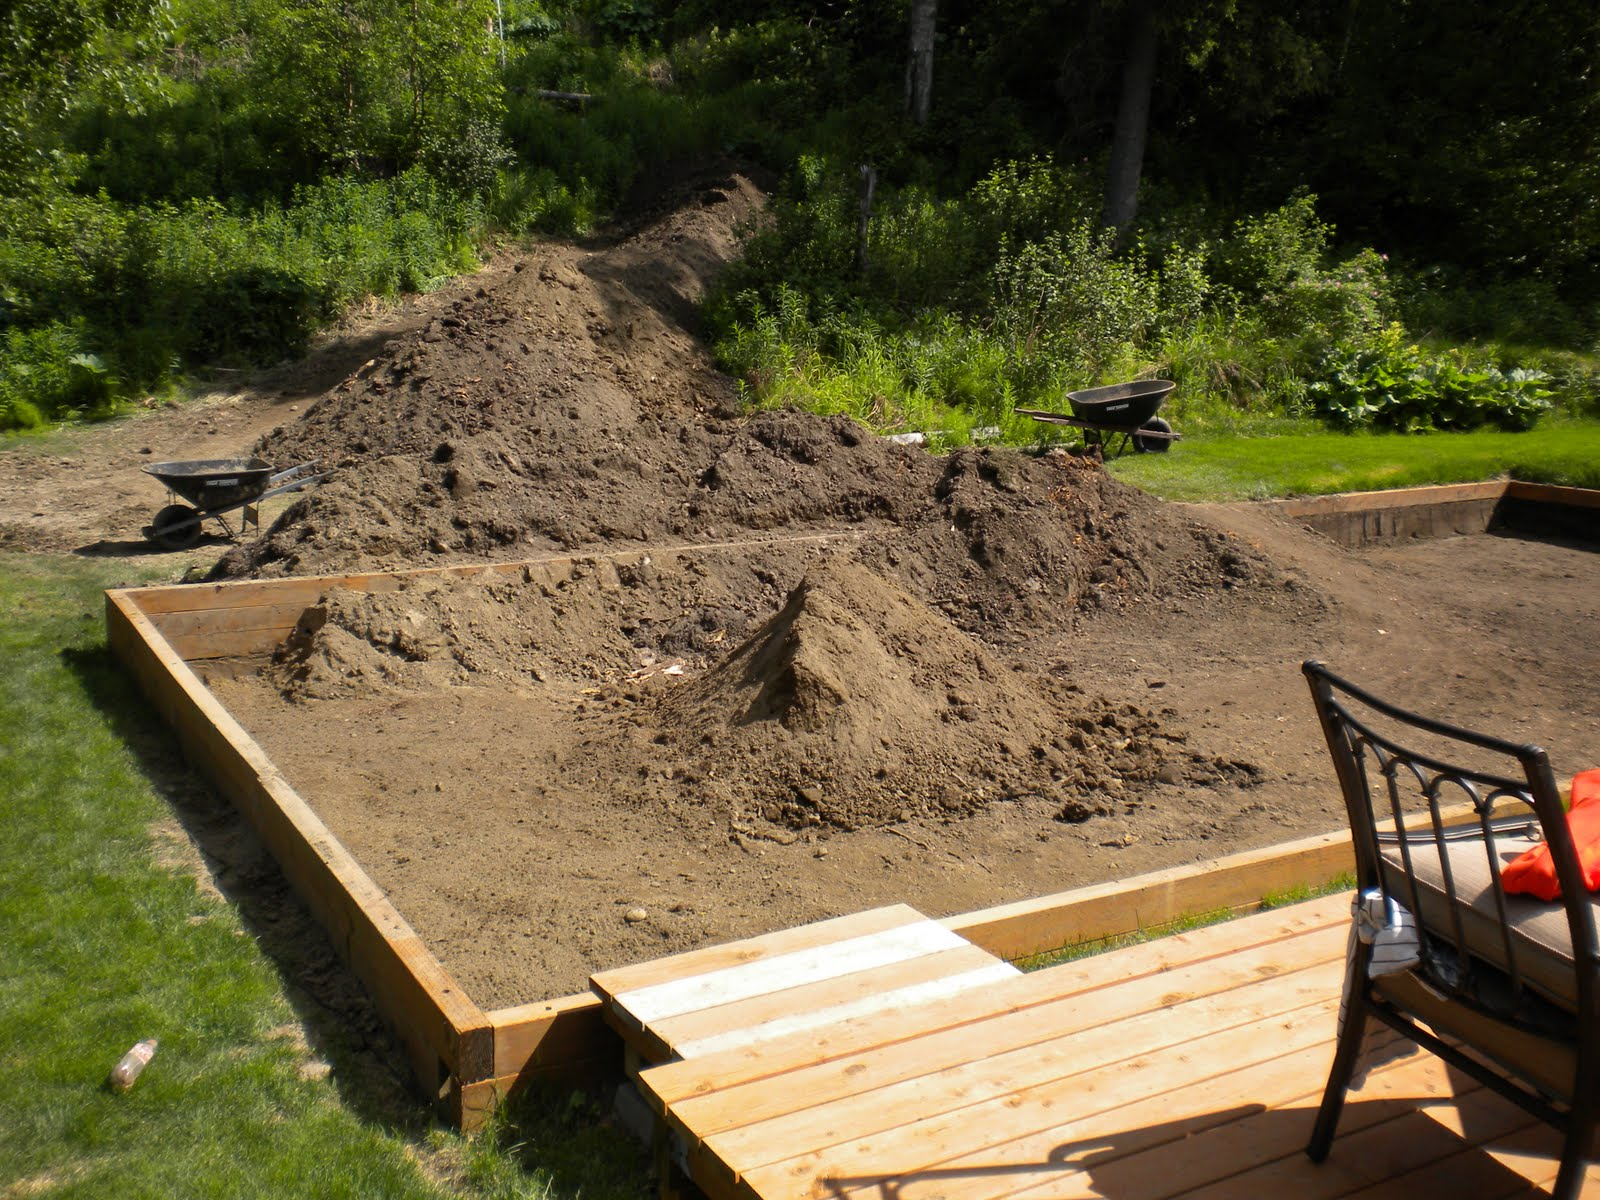 Backyard Sand Volleyball Court : The Quest for the Backyard Sand Volleyball Court